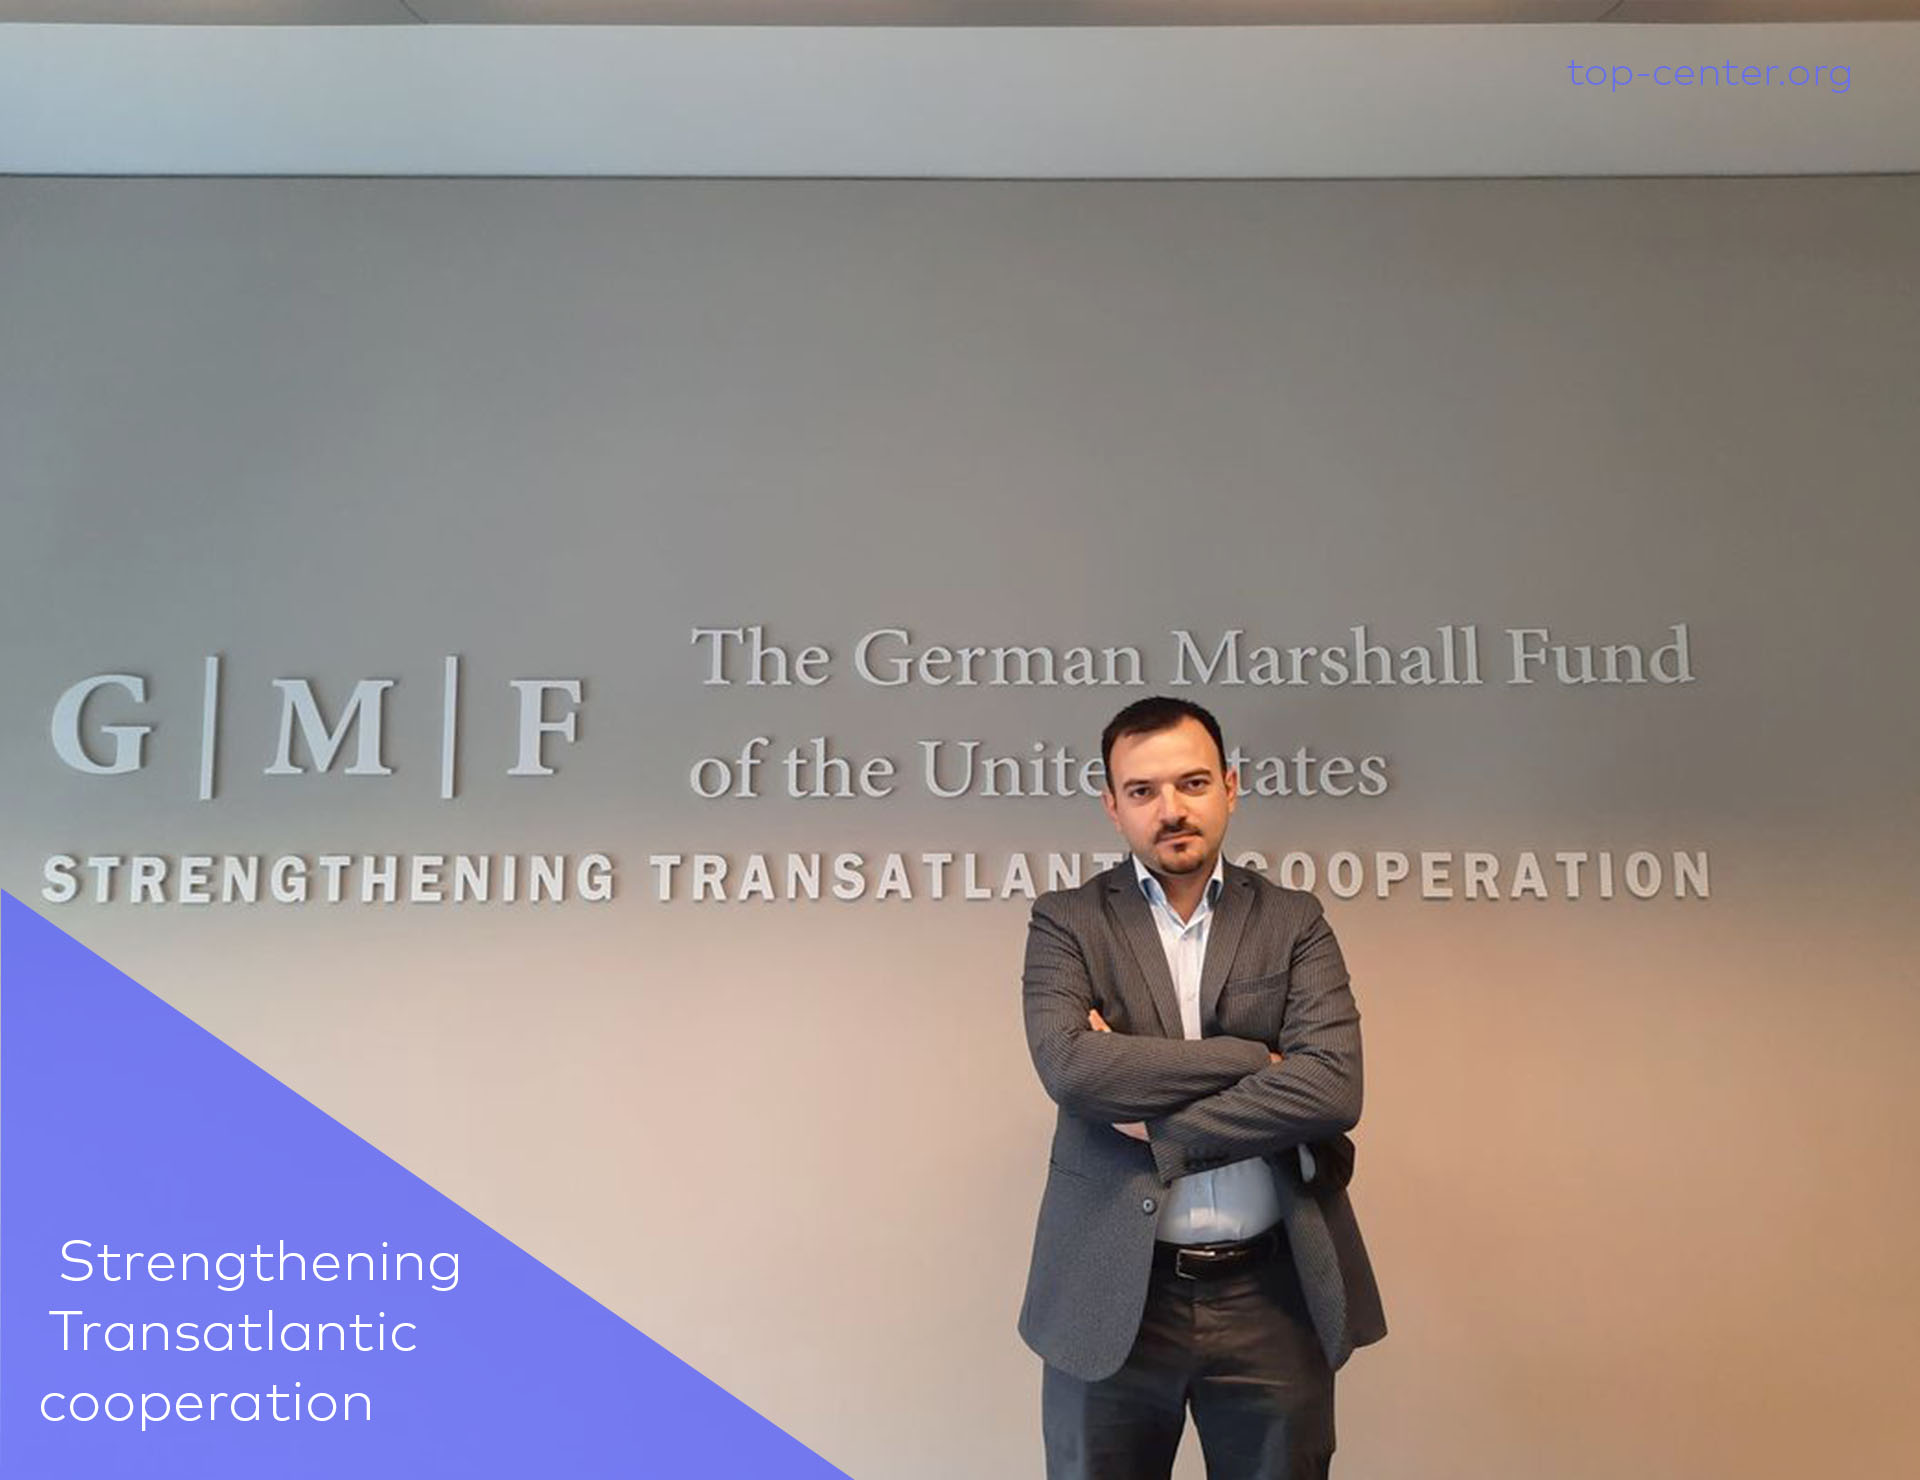 Rusif Huseynov attended a GMF-organized cohort gathering